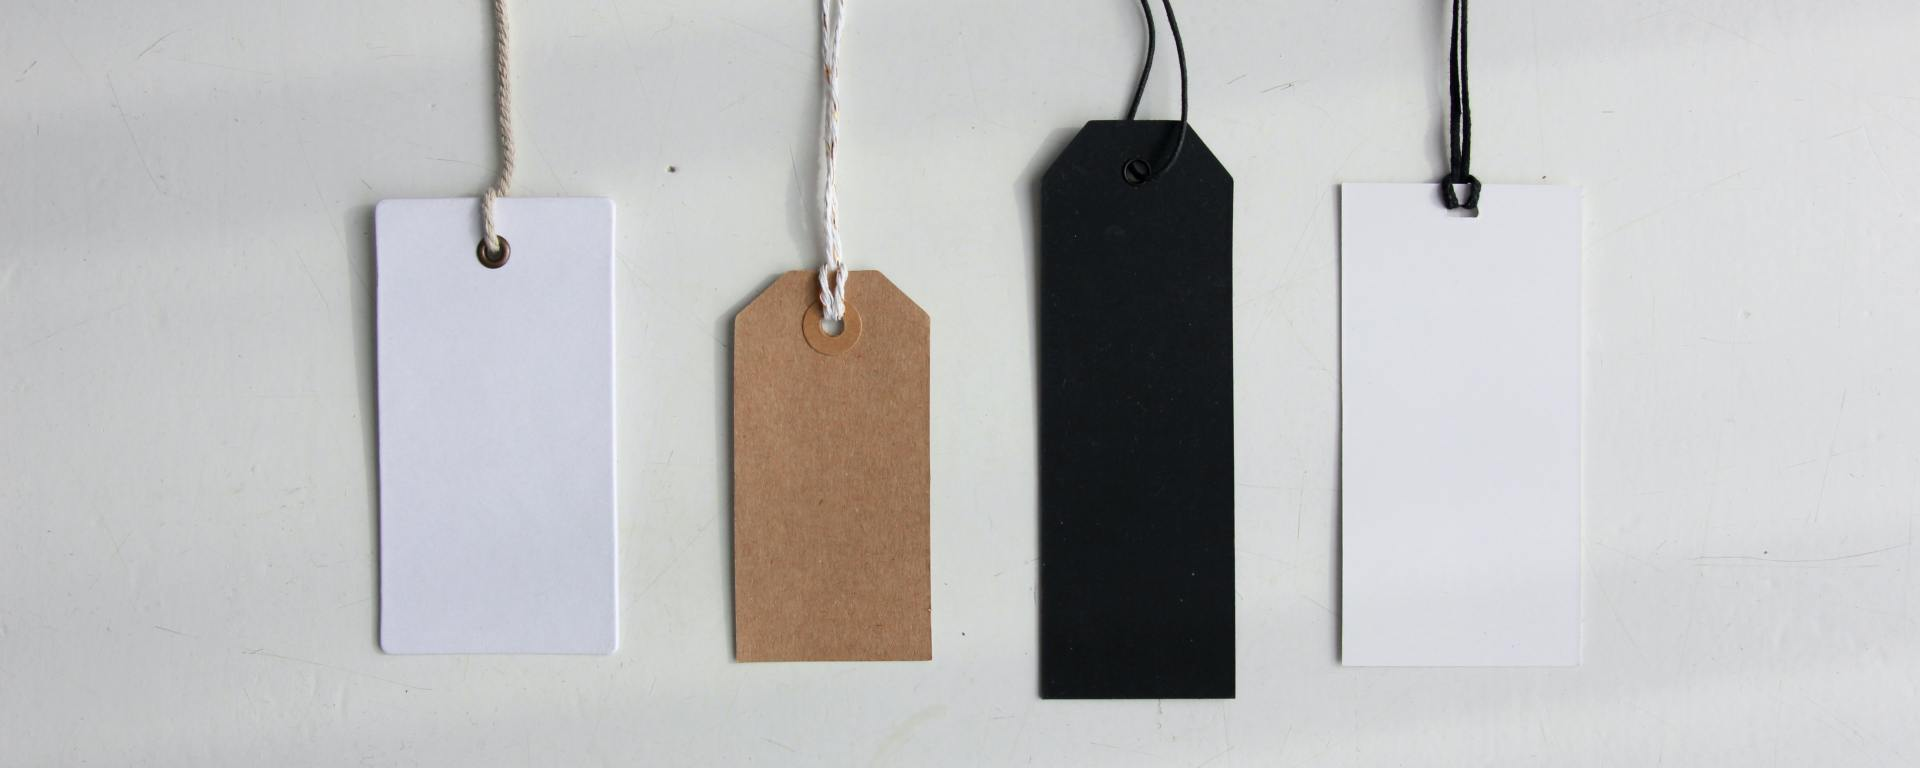 An image of four blank price or gift tags on a plain background.